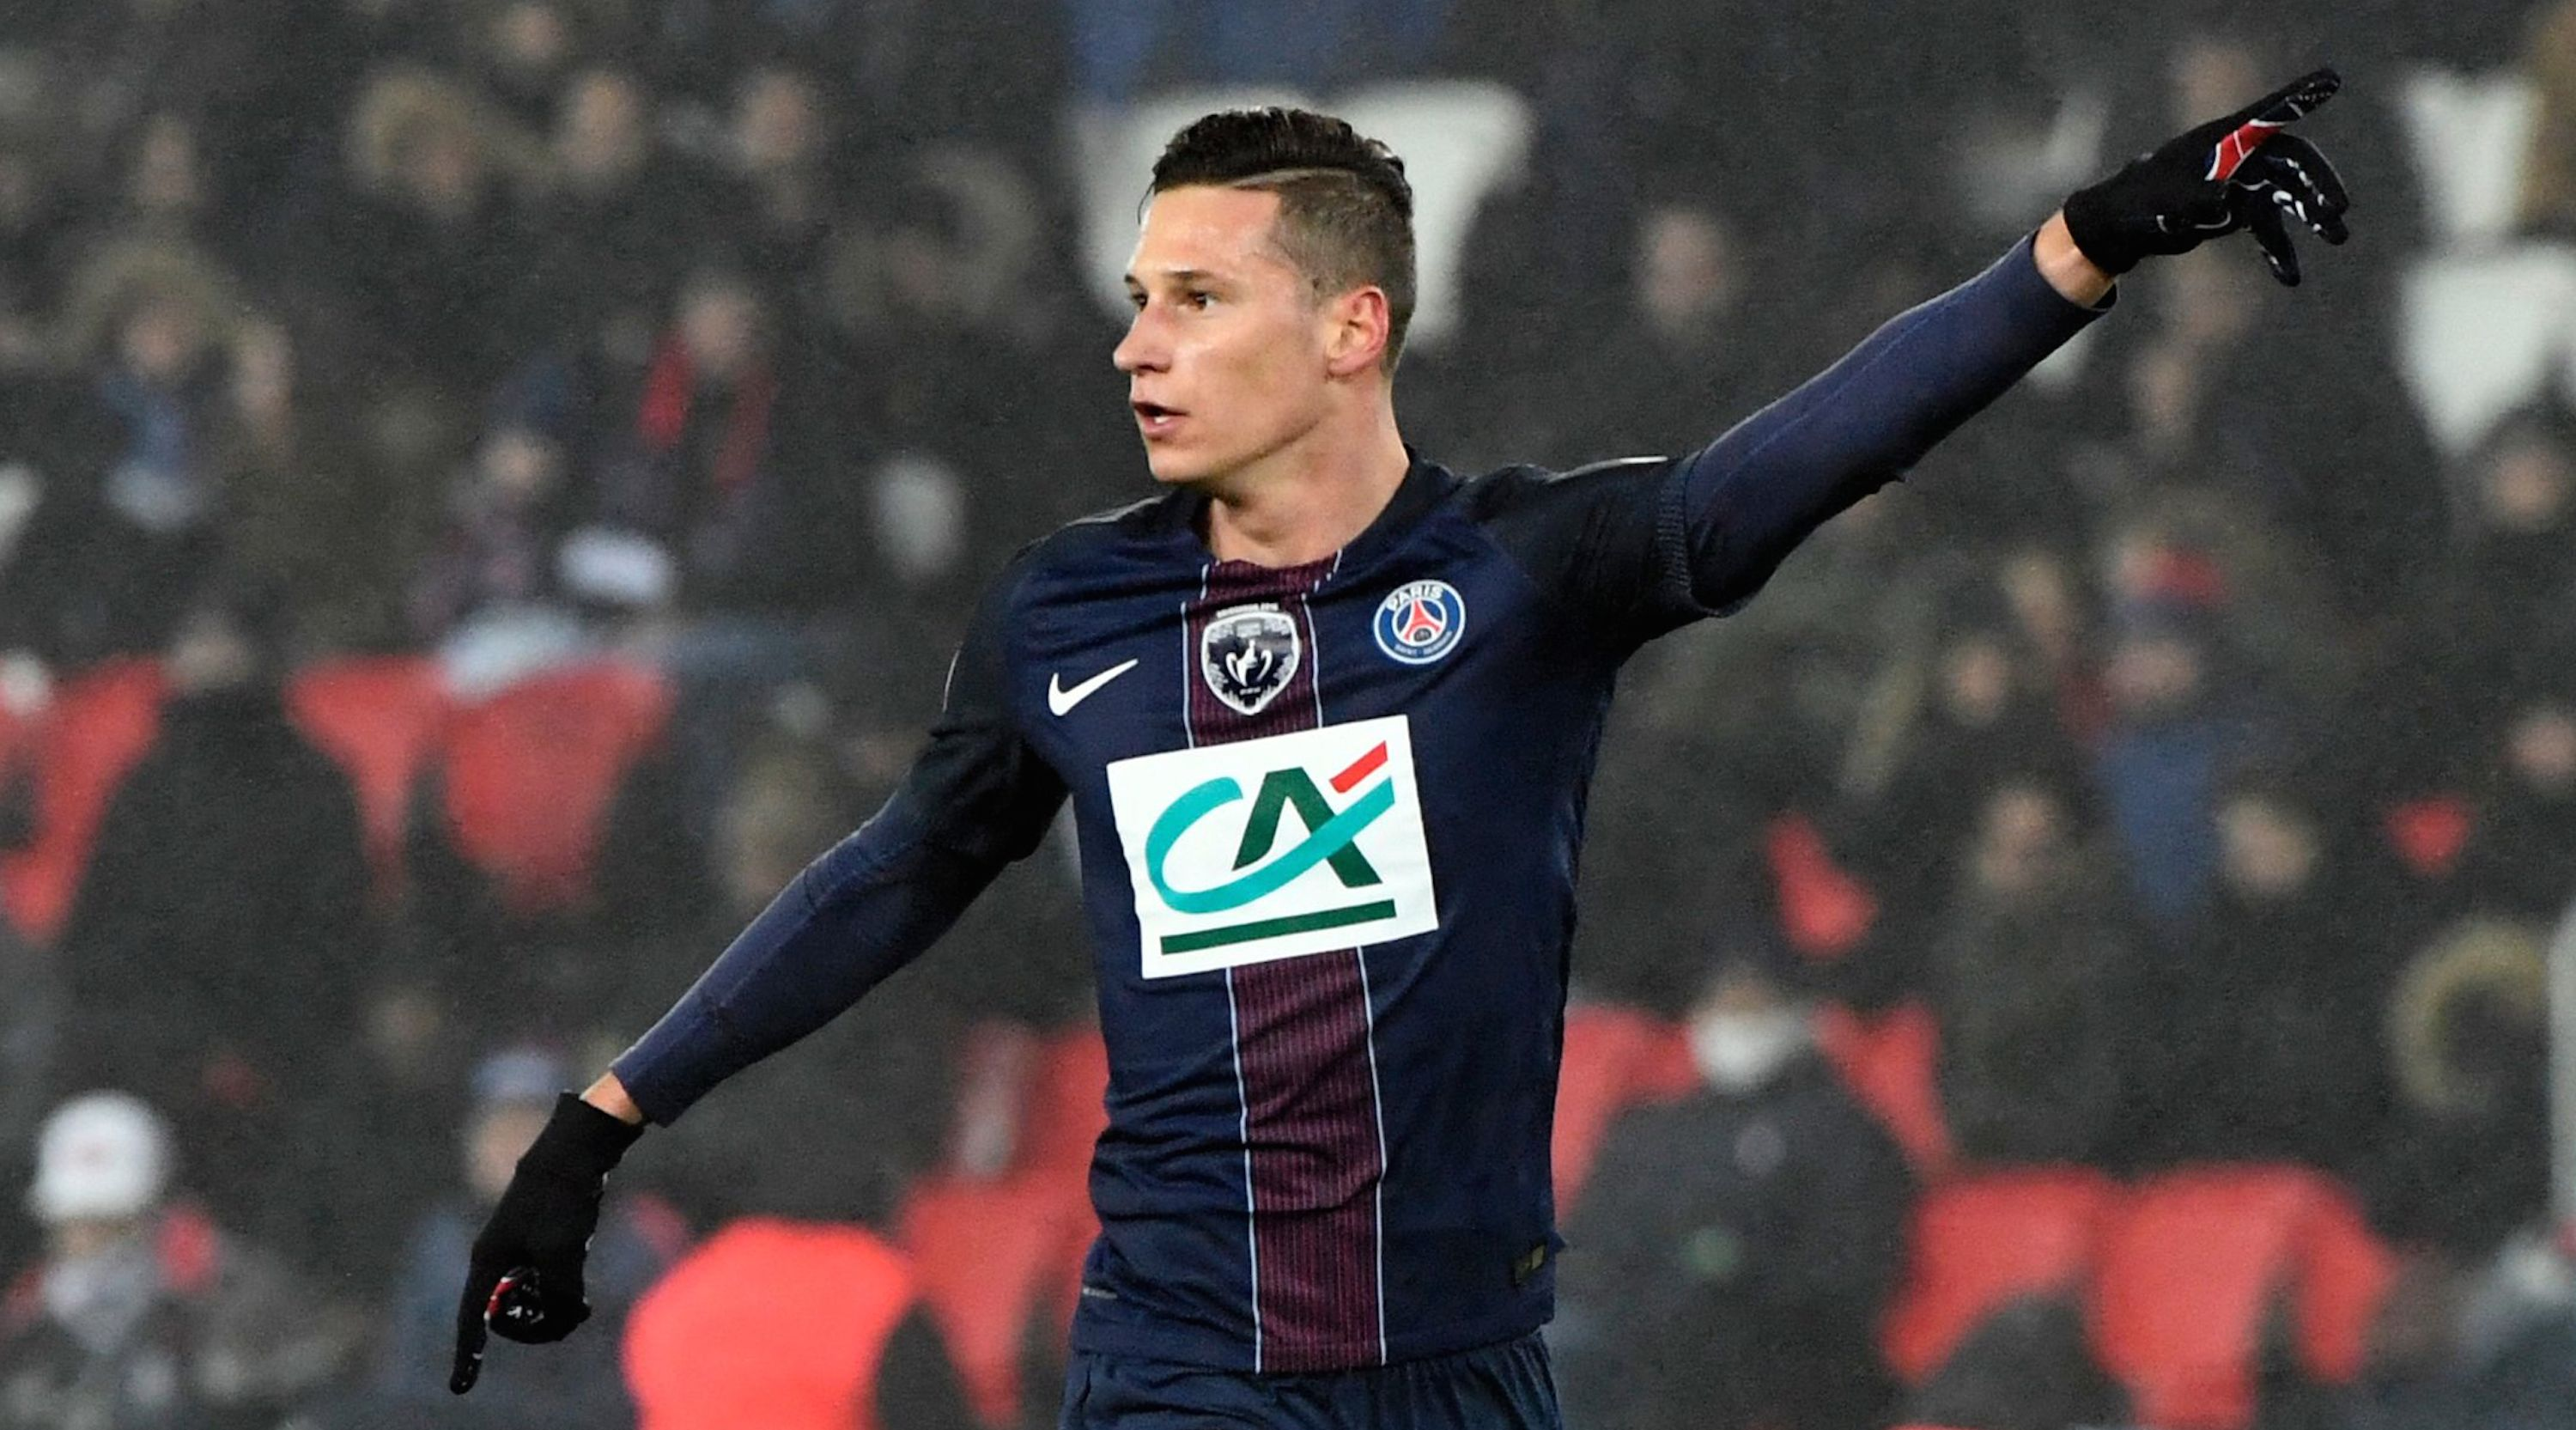 Paris Saint-Germain's German midfielder Julian Draxler (C) gestures during the French Cup football match between Paris Saint-Germain (PSG) and Bastia (SCB) at the Parc des Princes stadium in Paris, on January 7, 2017. / AFP / ALAIN JOCARD (Photo credit should read ALAIN JOCARD/AFP/Getty Images)